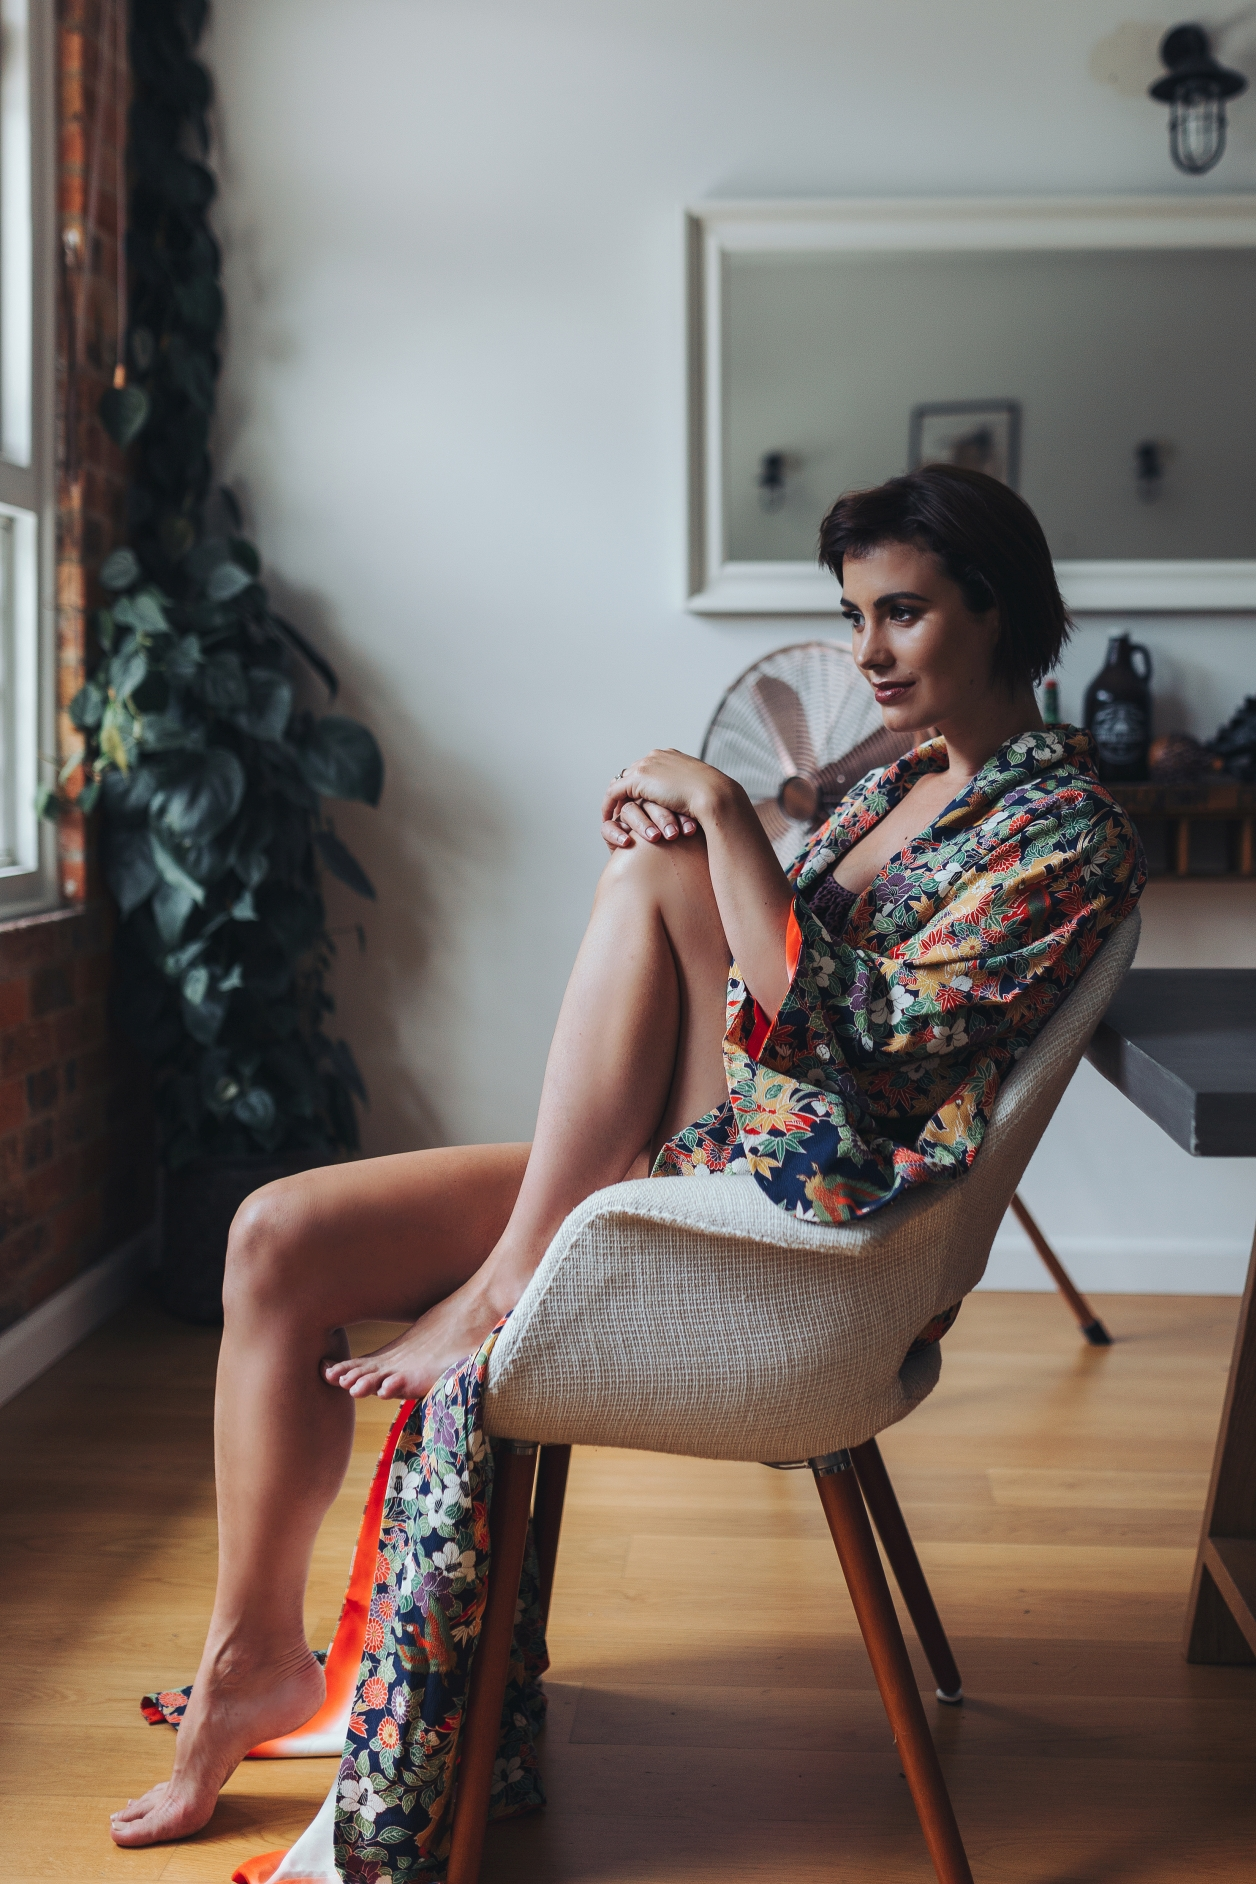 Woman smiles and leans back in chair during fashion photo shoot.